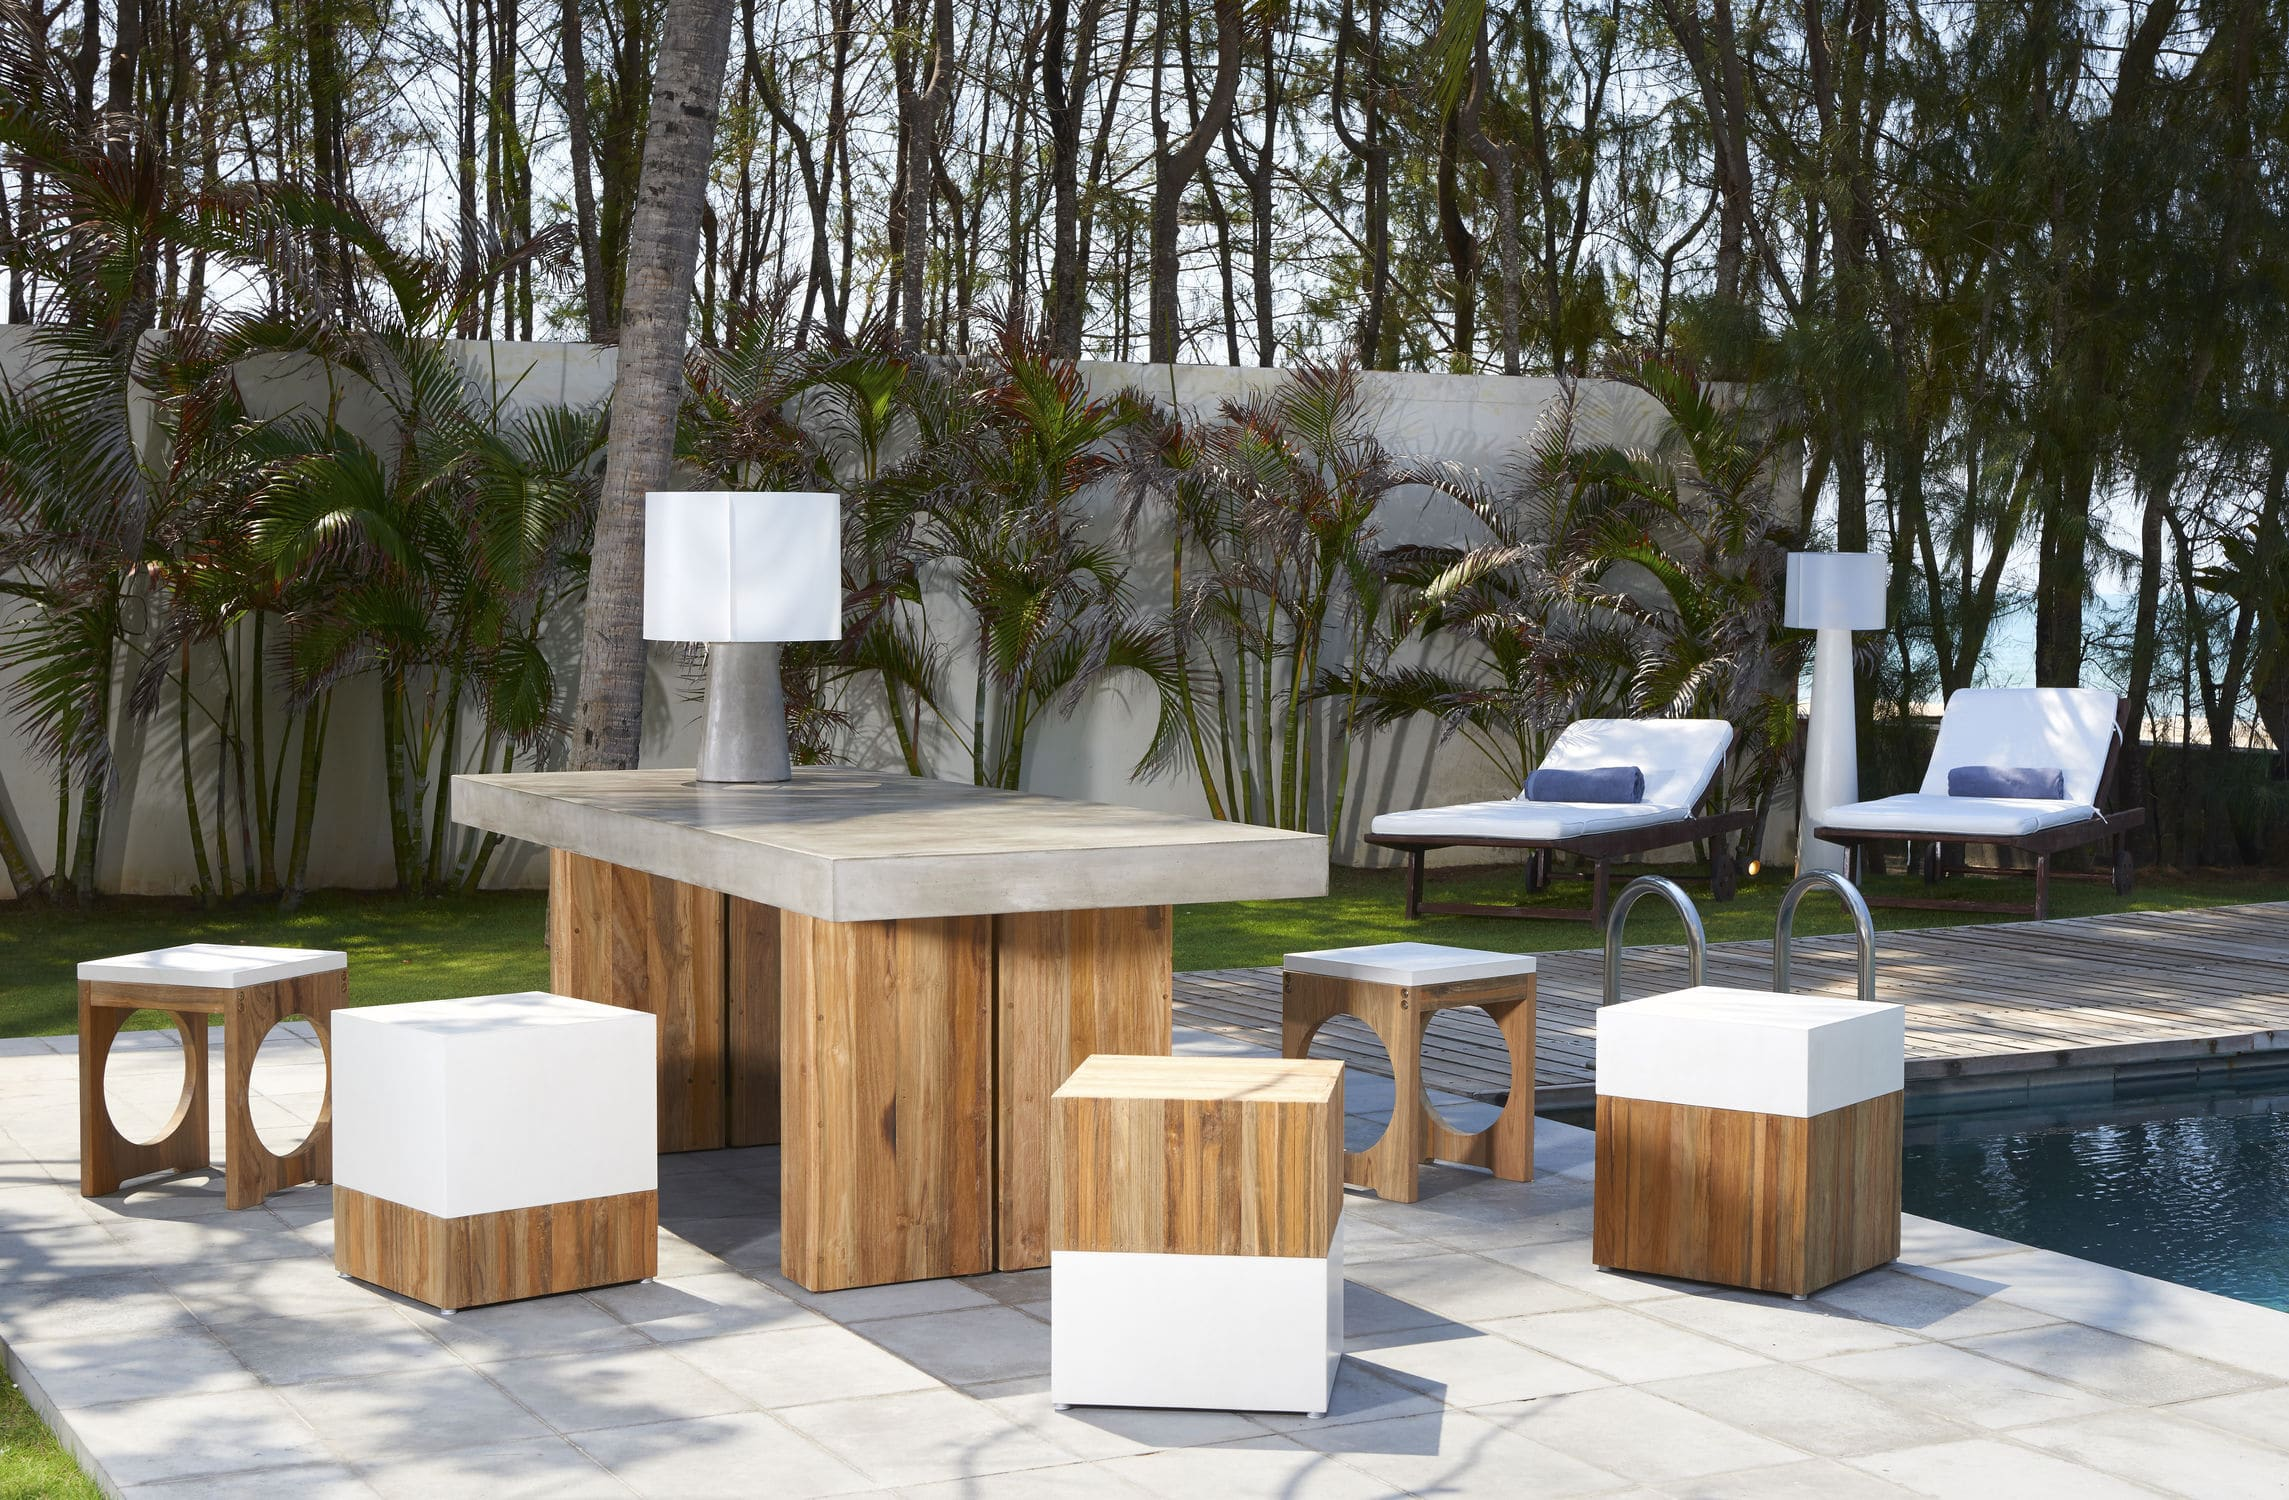 High Quality ... Contemporary Bench And Table Set / Teak / Concrete / Outdoor ...